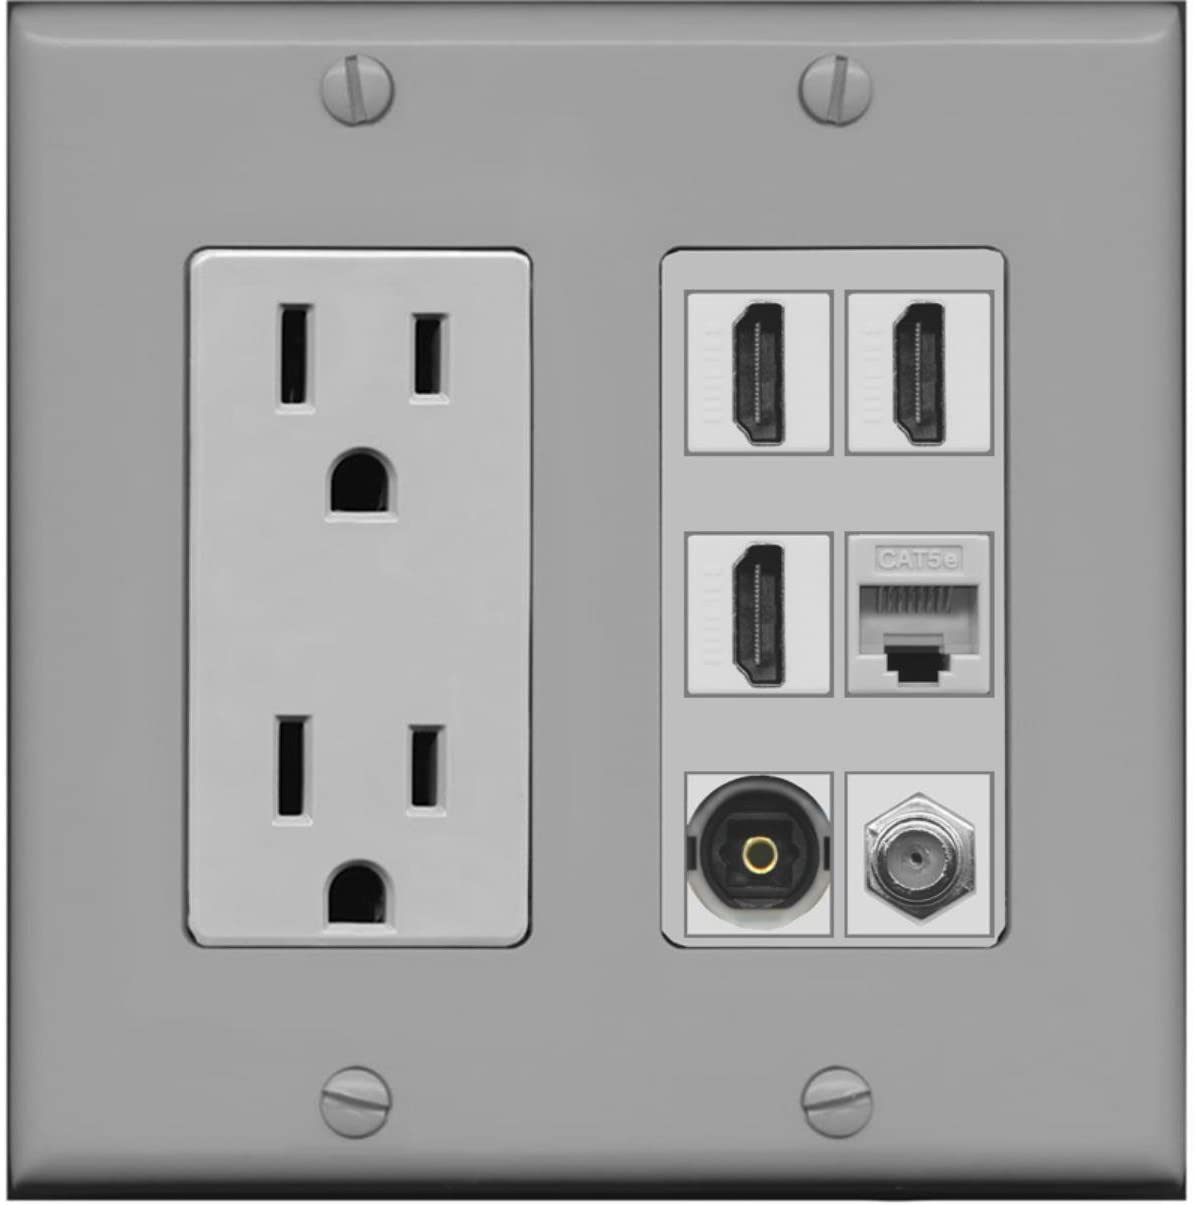 RiteAV Power Outlet 3 HDMI Coax Cat5e Toslink Wall Plate - Gray